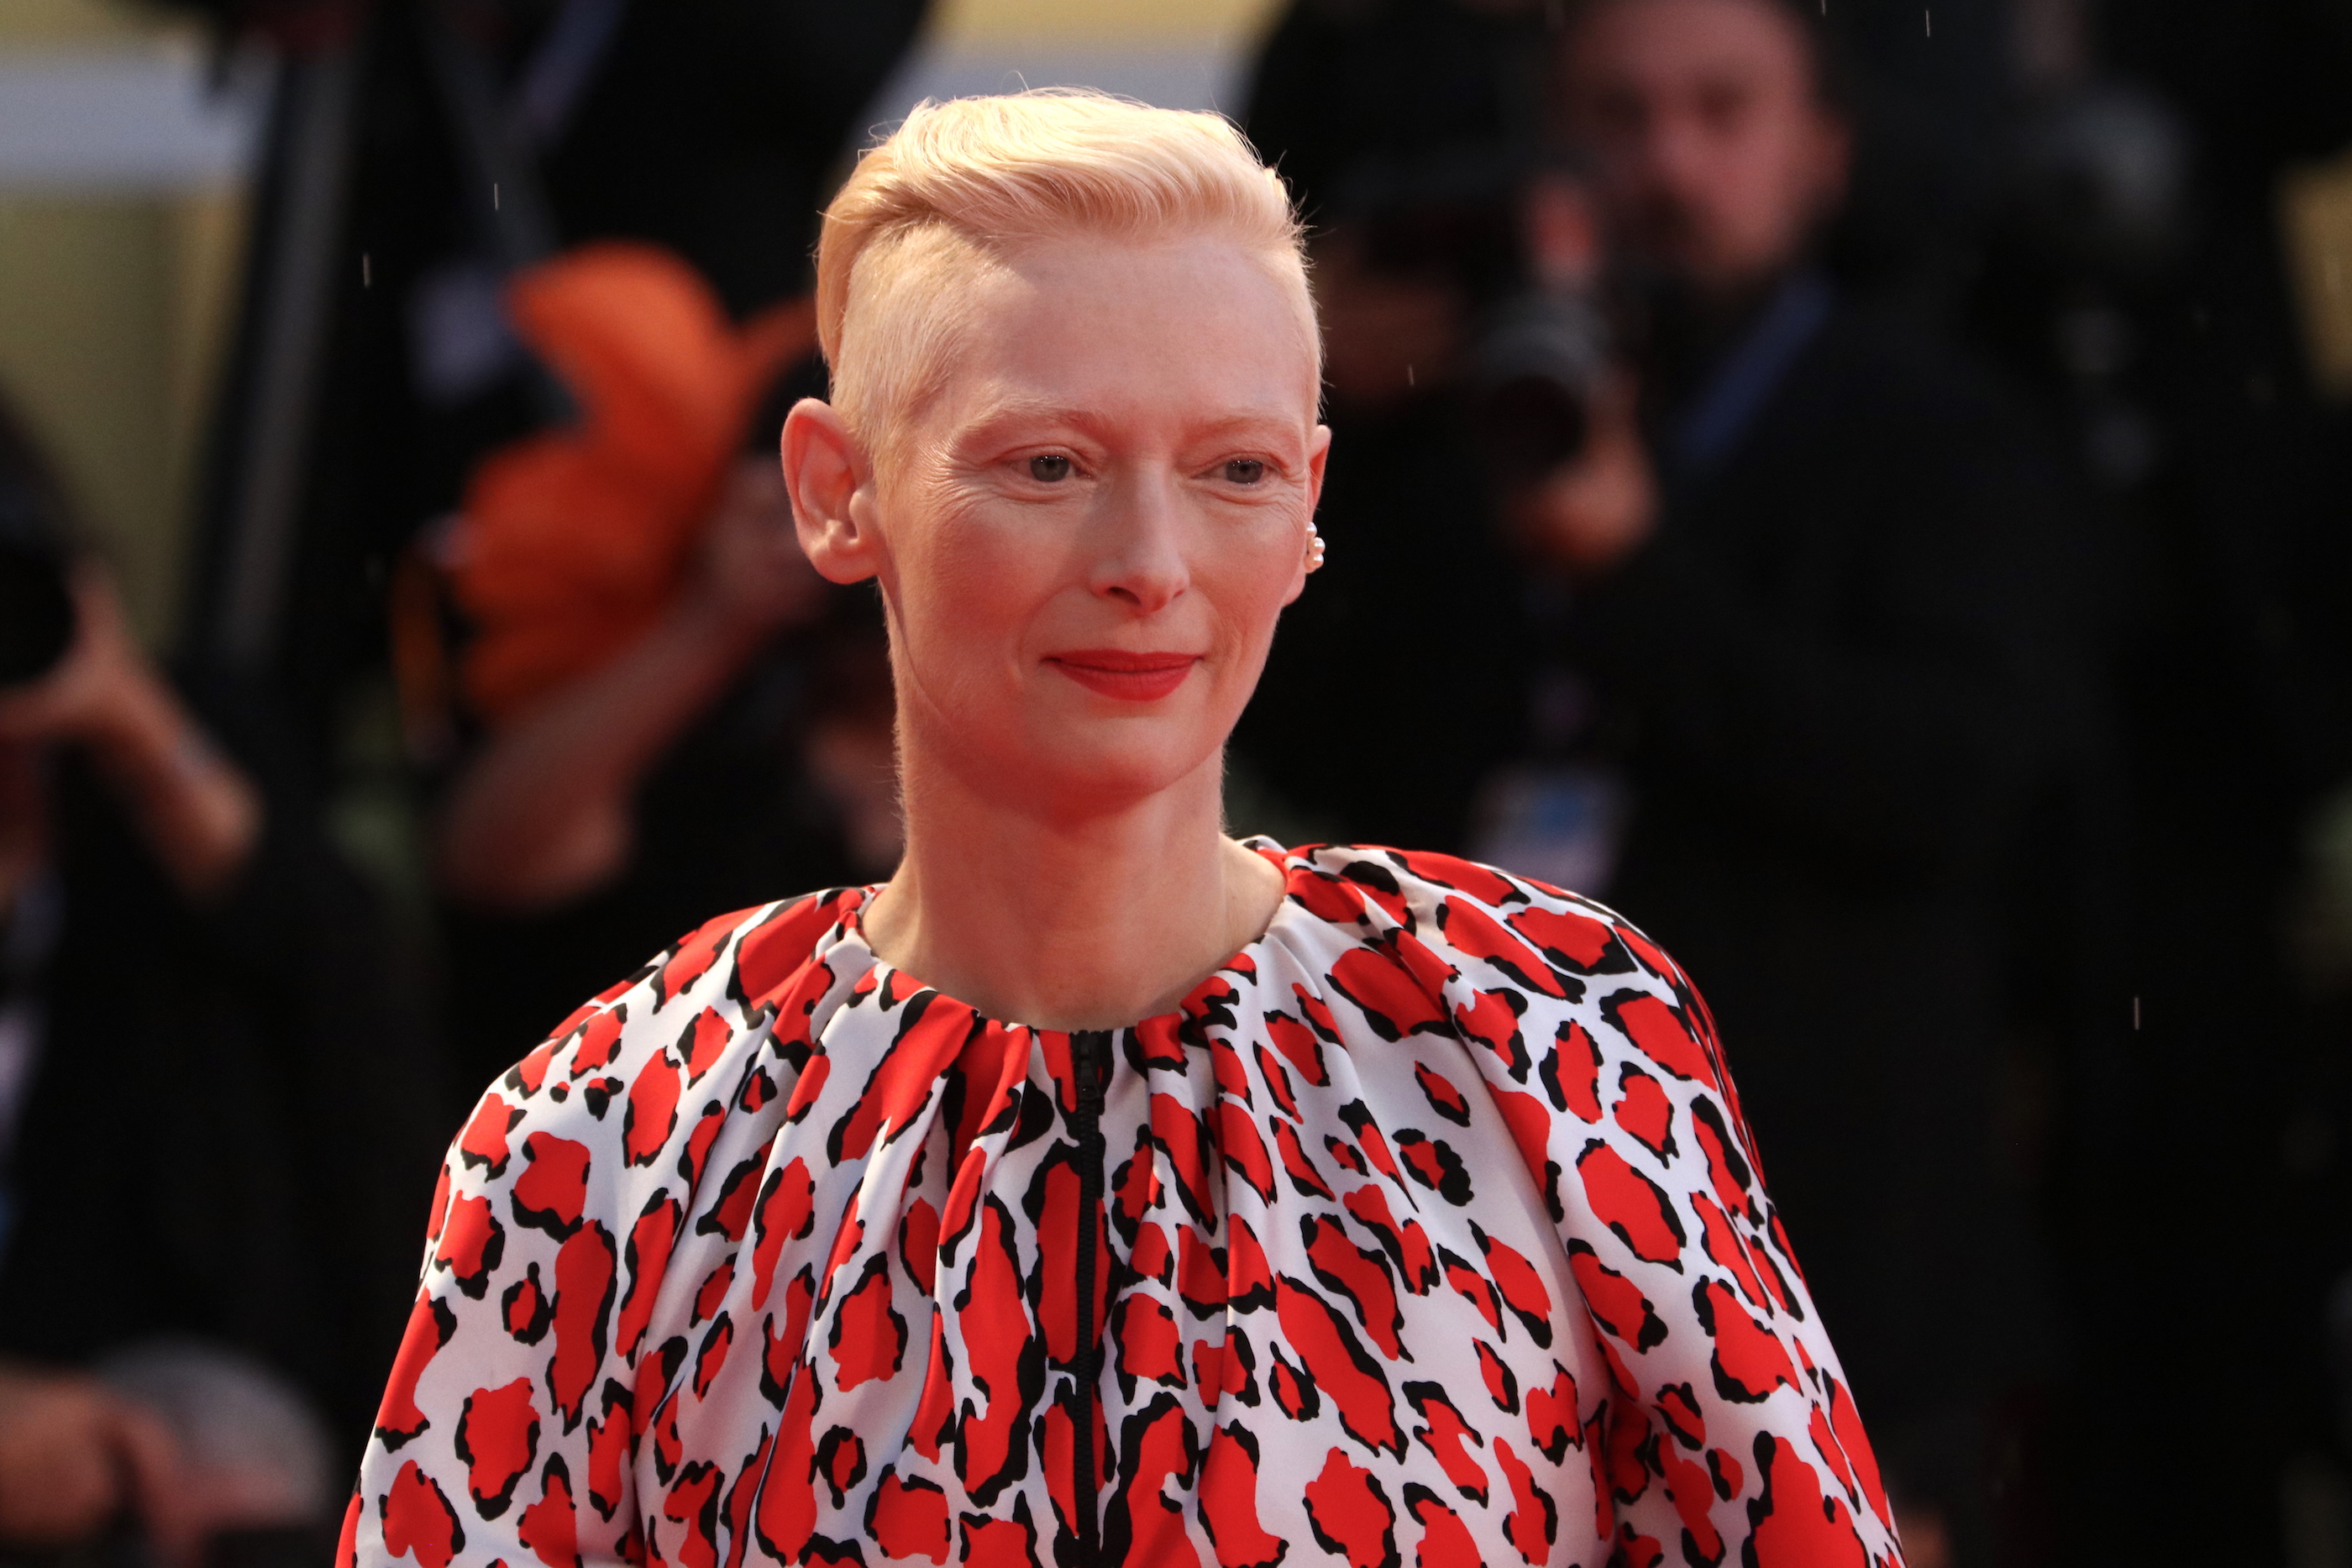 Venezia 2018: l'attrice Tilda Swinton sul red catpet di At Eternity's Gate